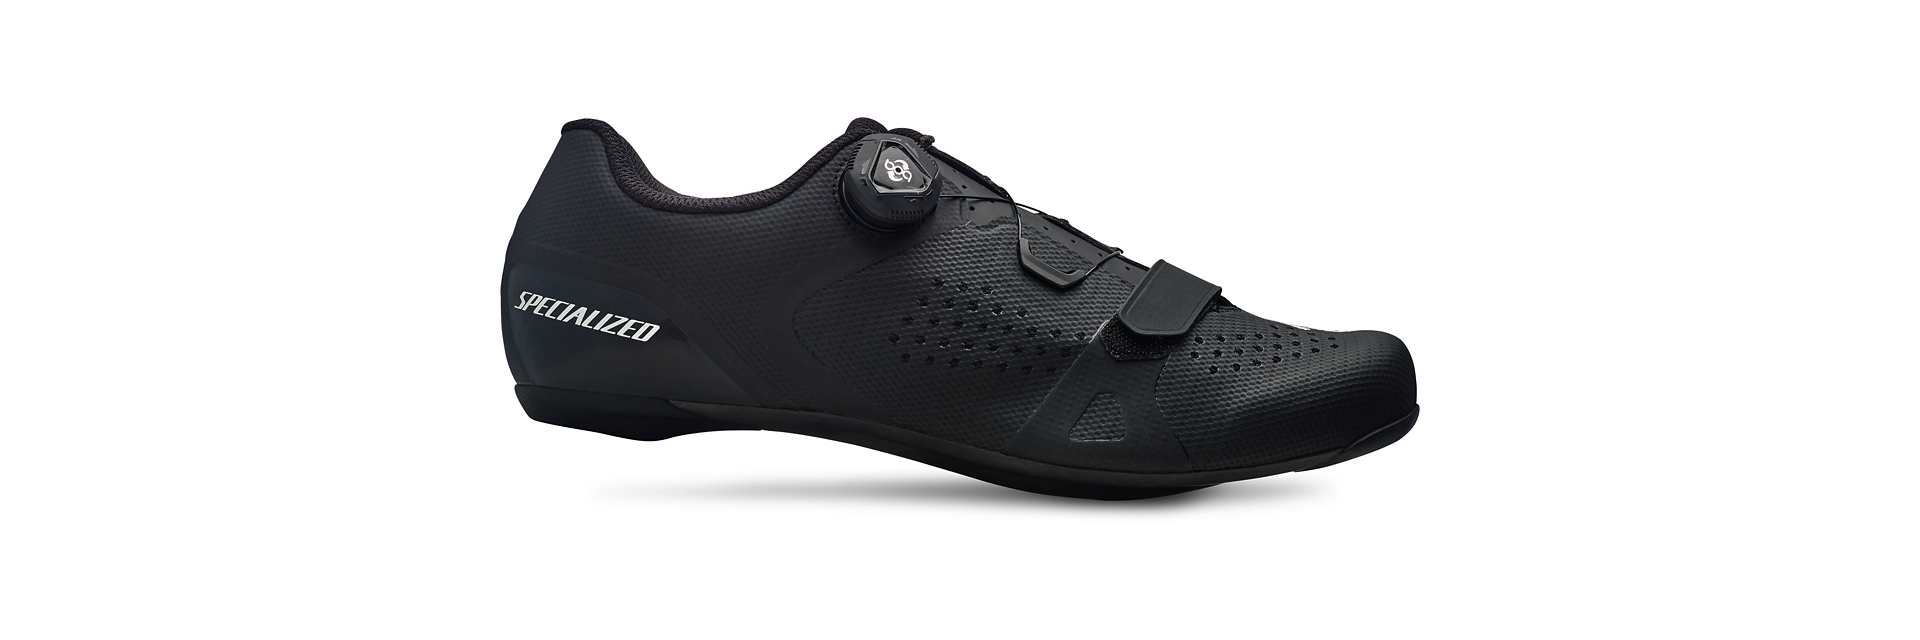 Specialized Torch 2.0 Road Shoes graphic